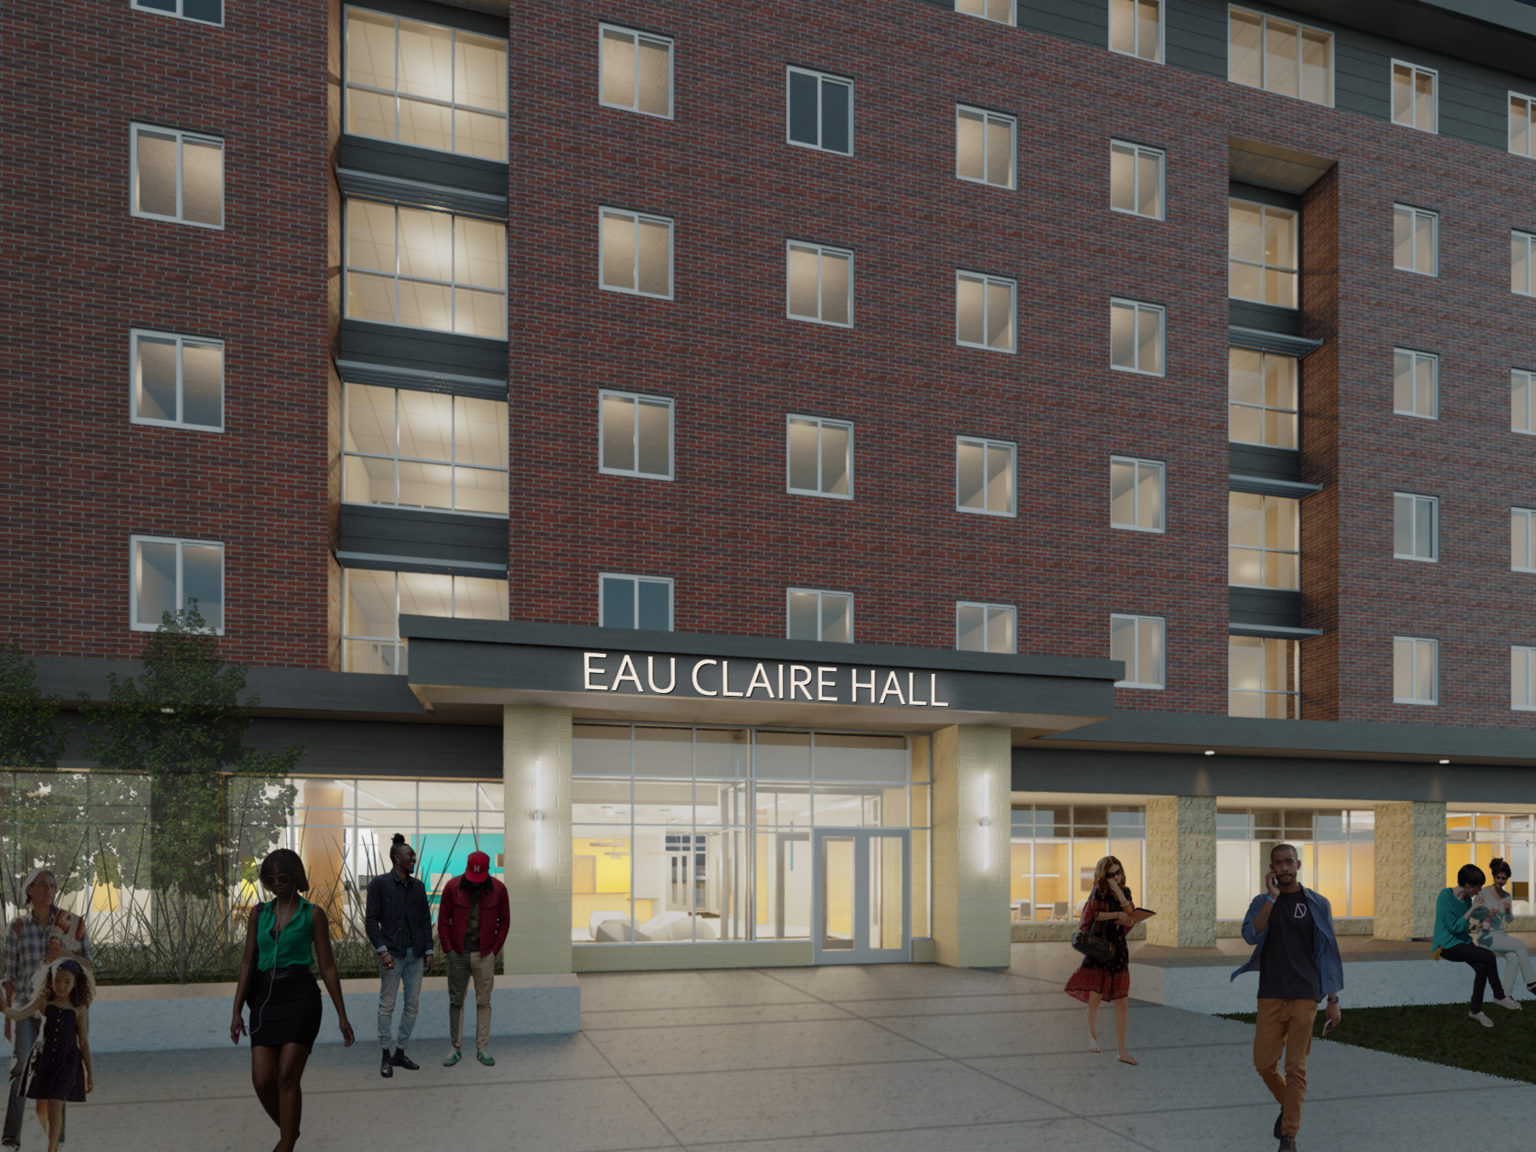 Groundbreaking: UW-Eau Claire Residence Hall